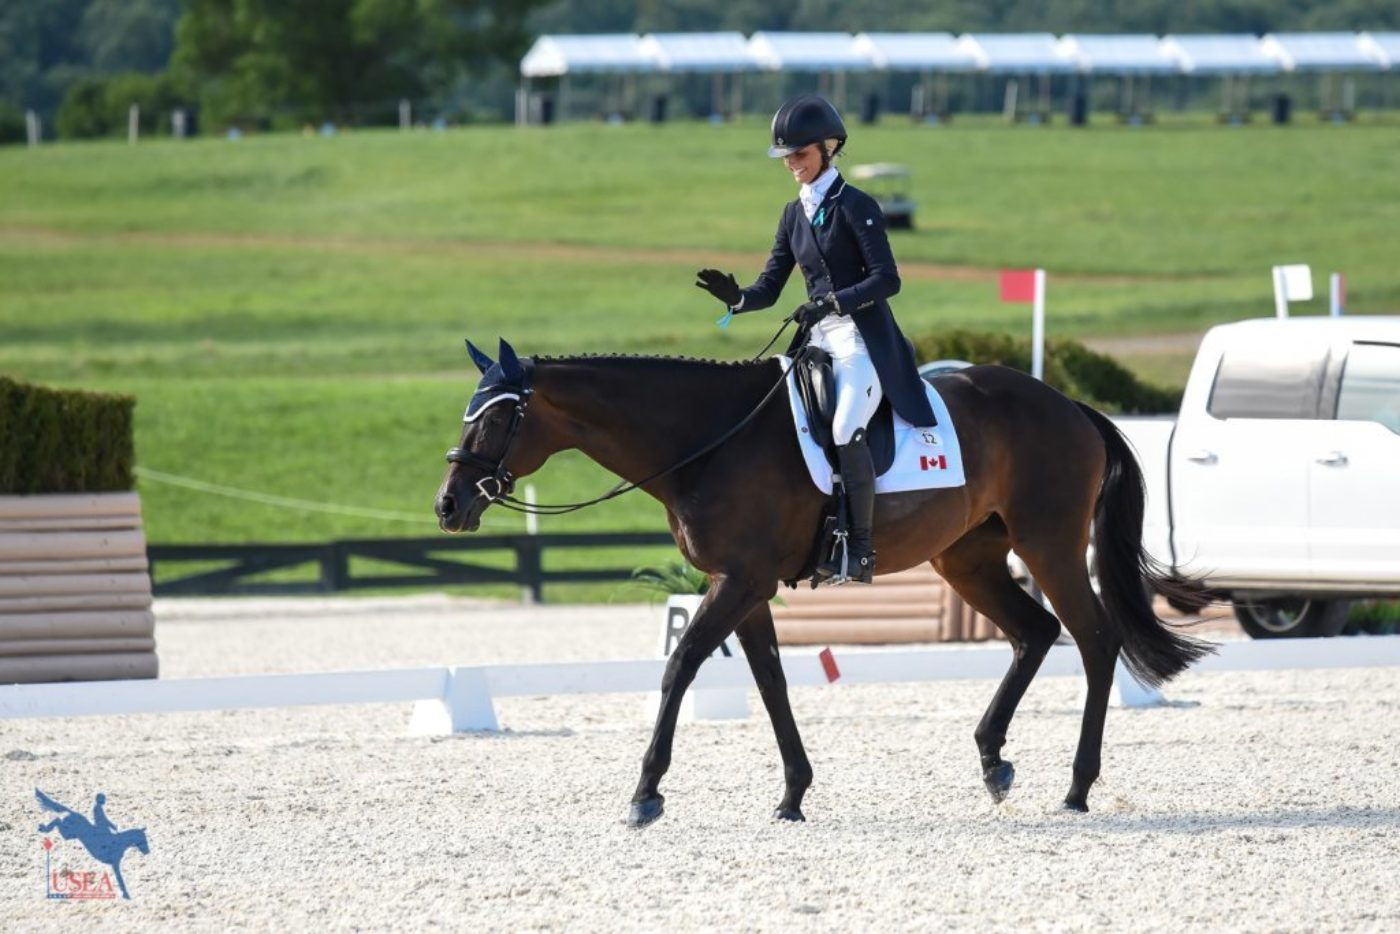 Shelby Brost loving on Crimson after their dressage test. USEA/Jessica Duffy Photo.